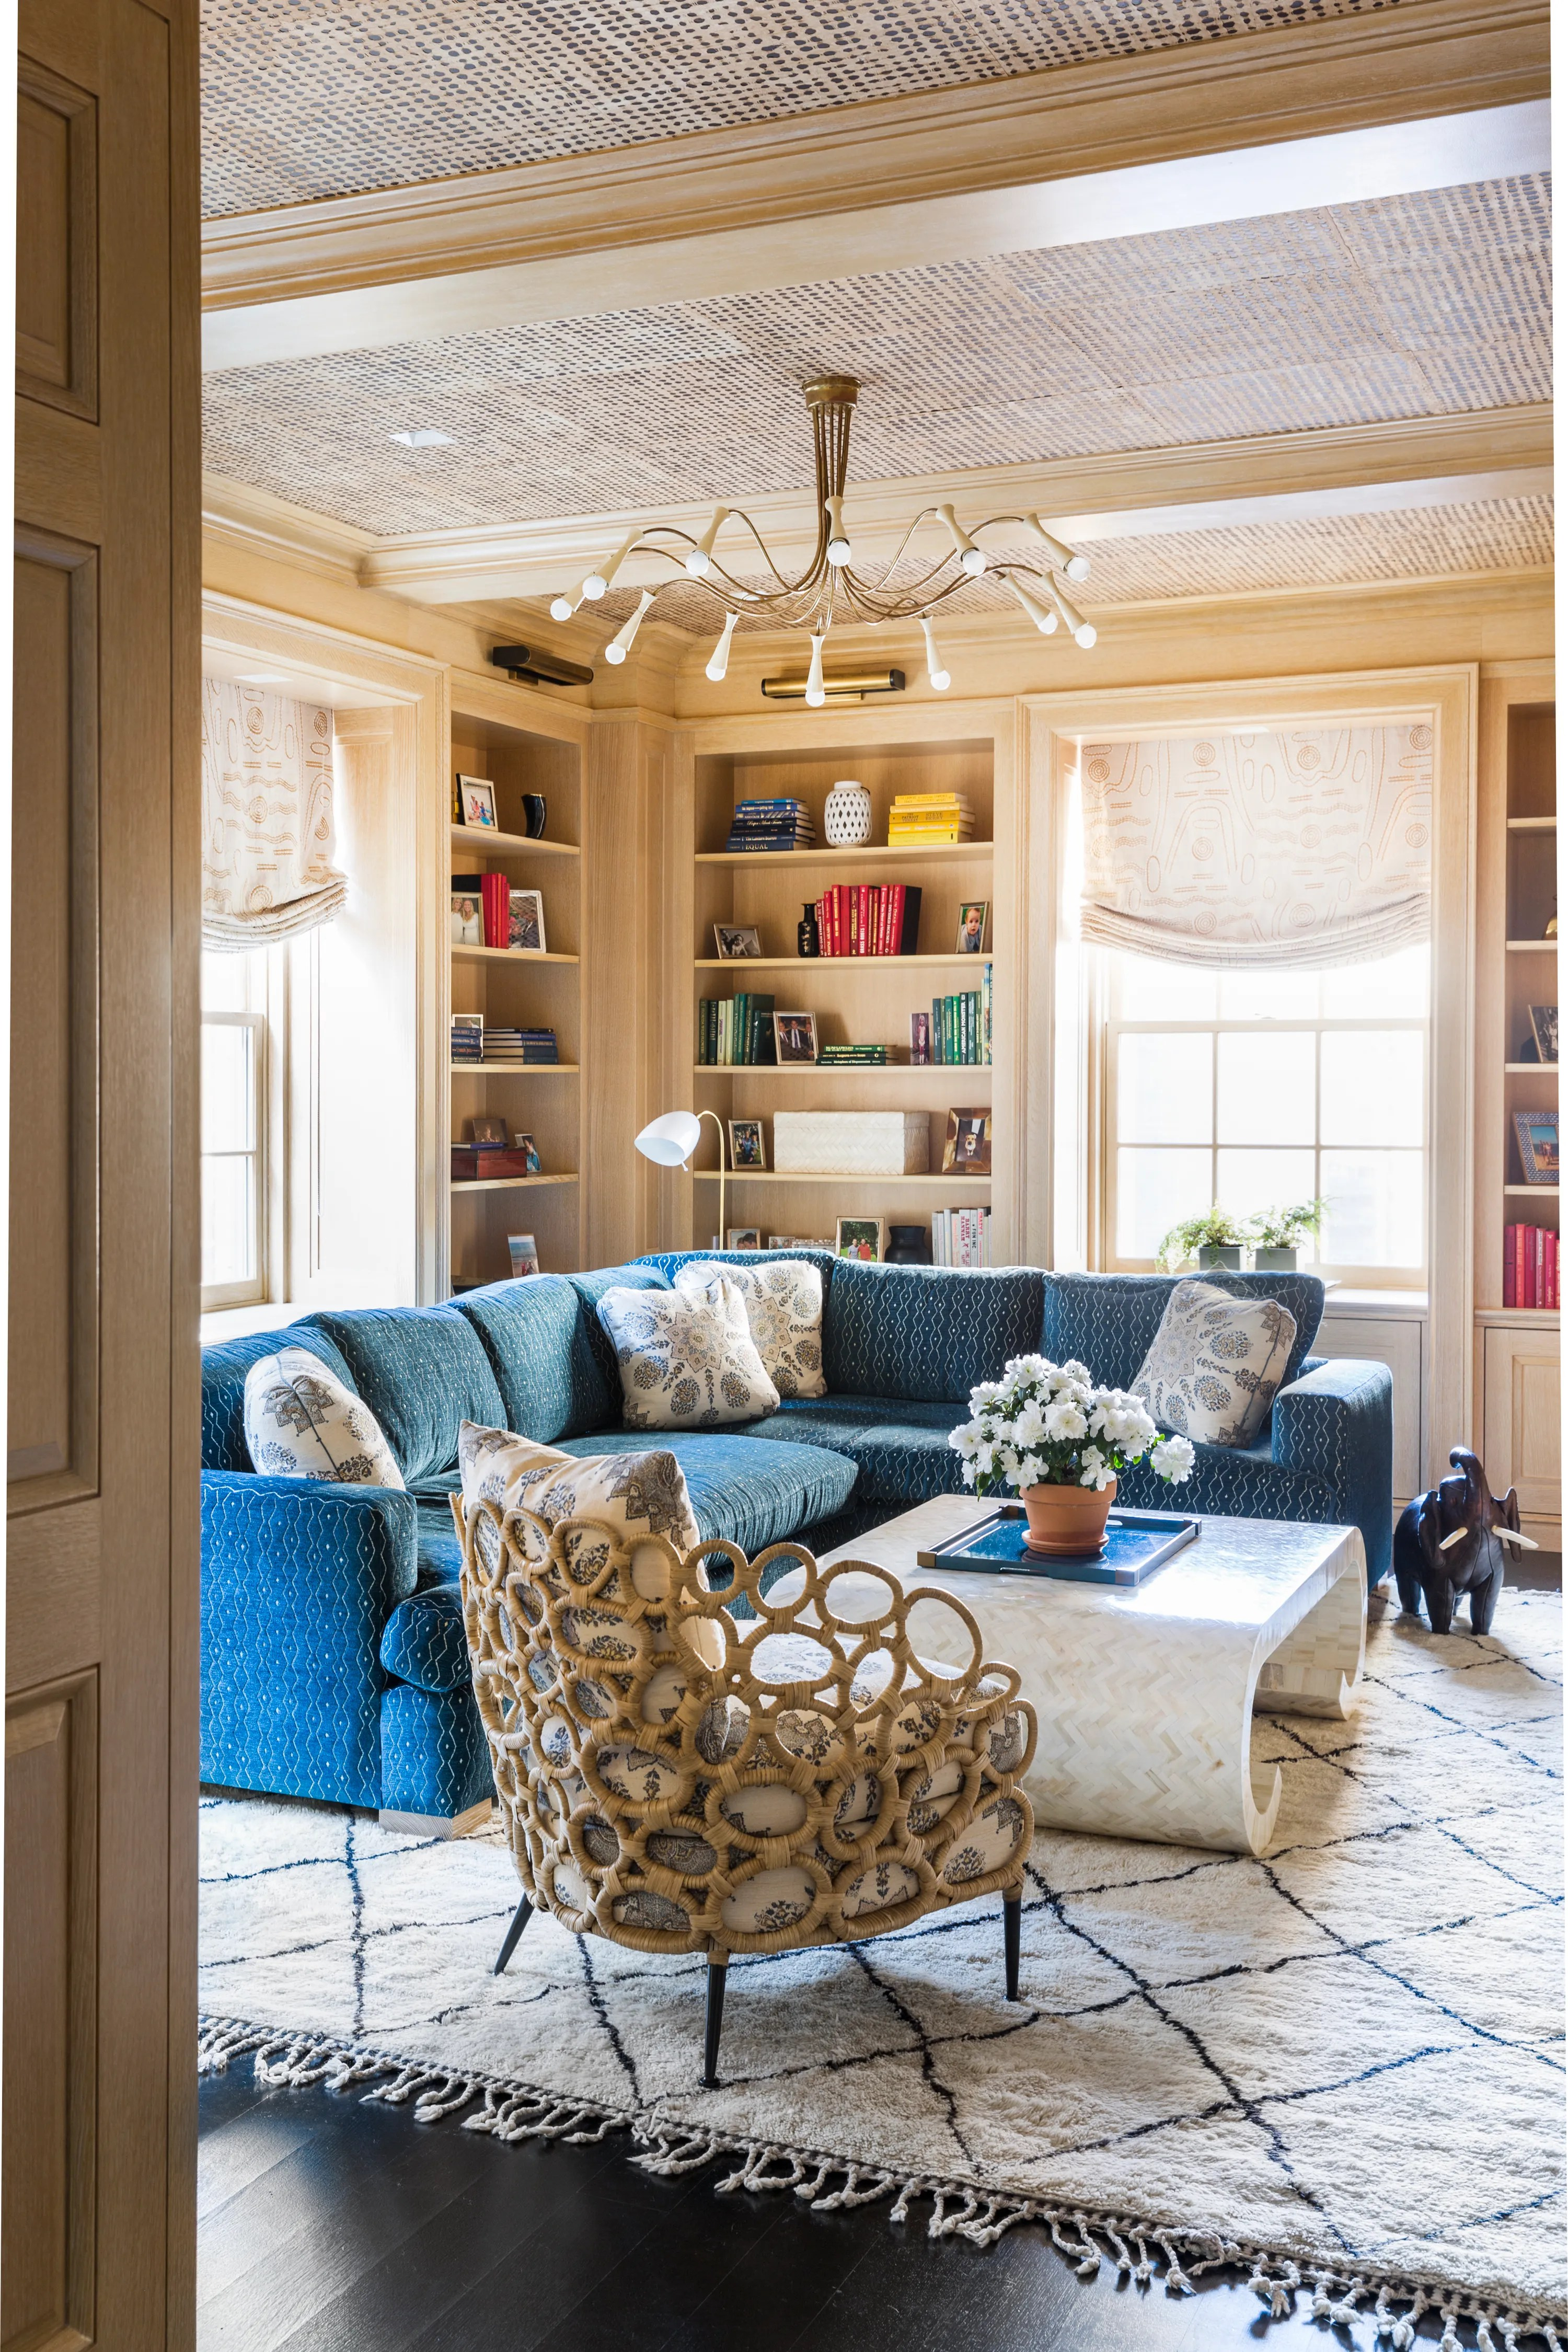 The Best Sofas For Small Rooms Are Sectionals Architectural Digest